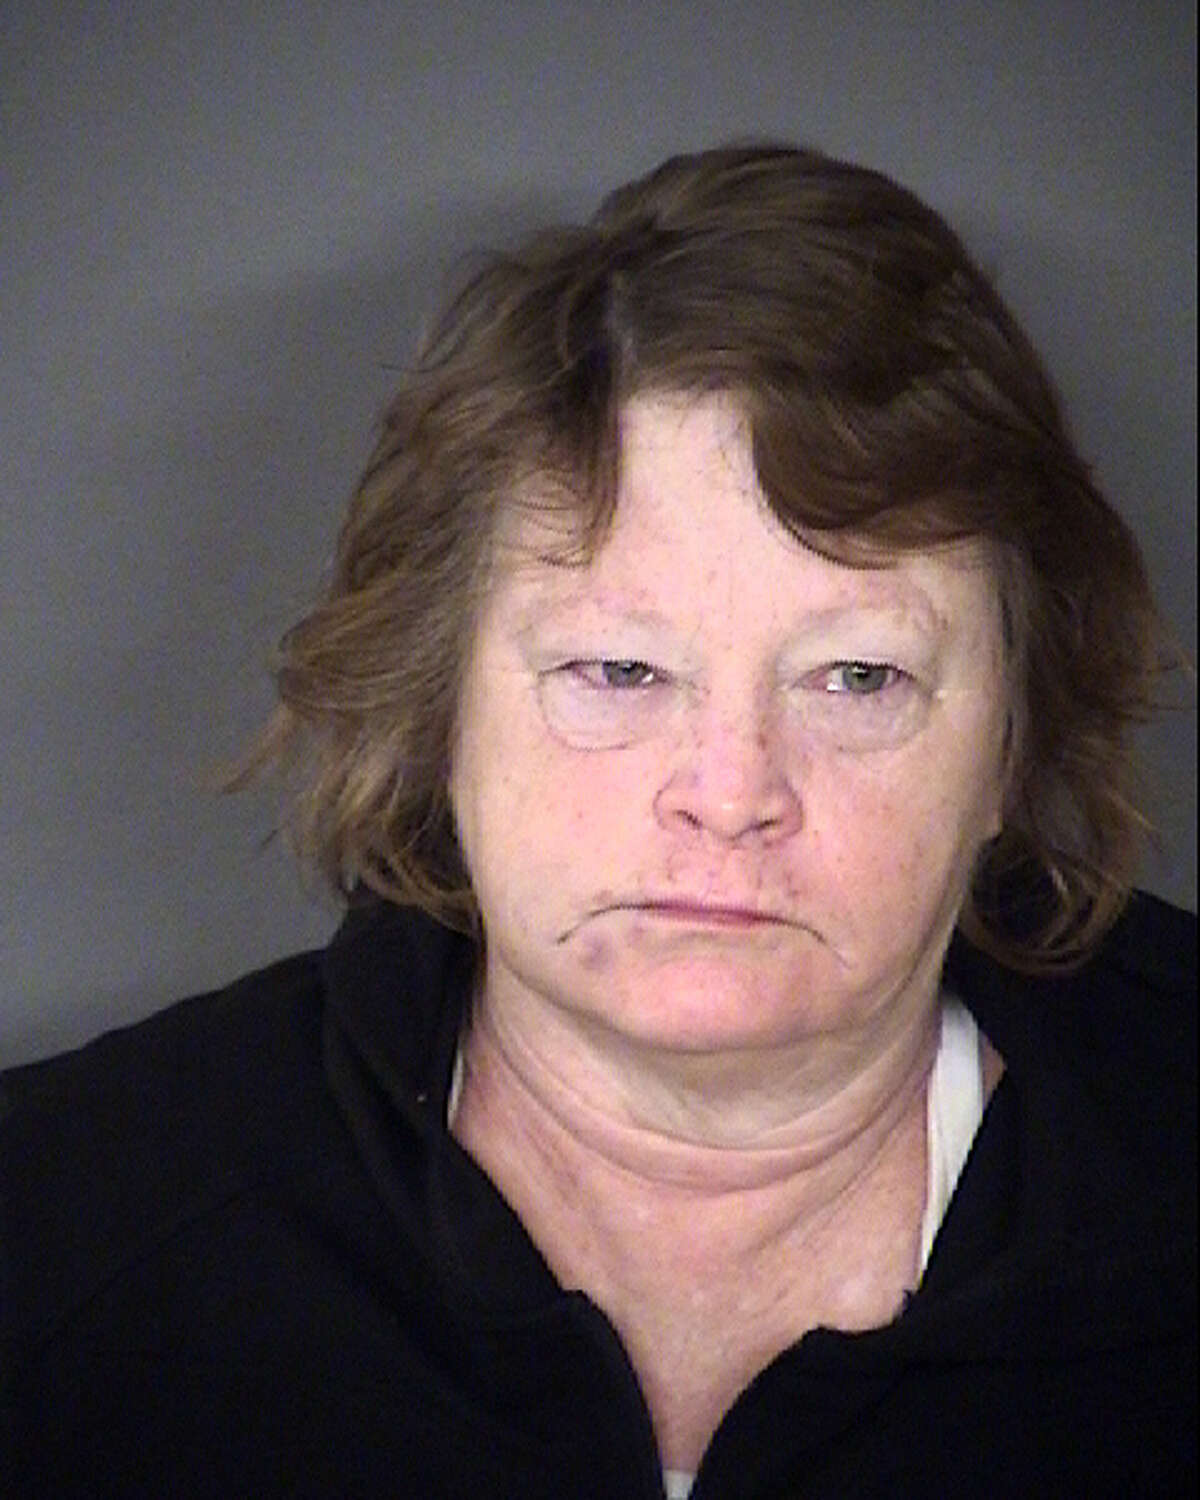 Evelyn Kay Garretson faces a charge of theft of an amount between $2,500 and $30,000. She remains in the Bexar County Jail.